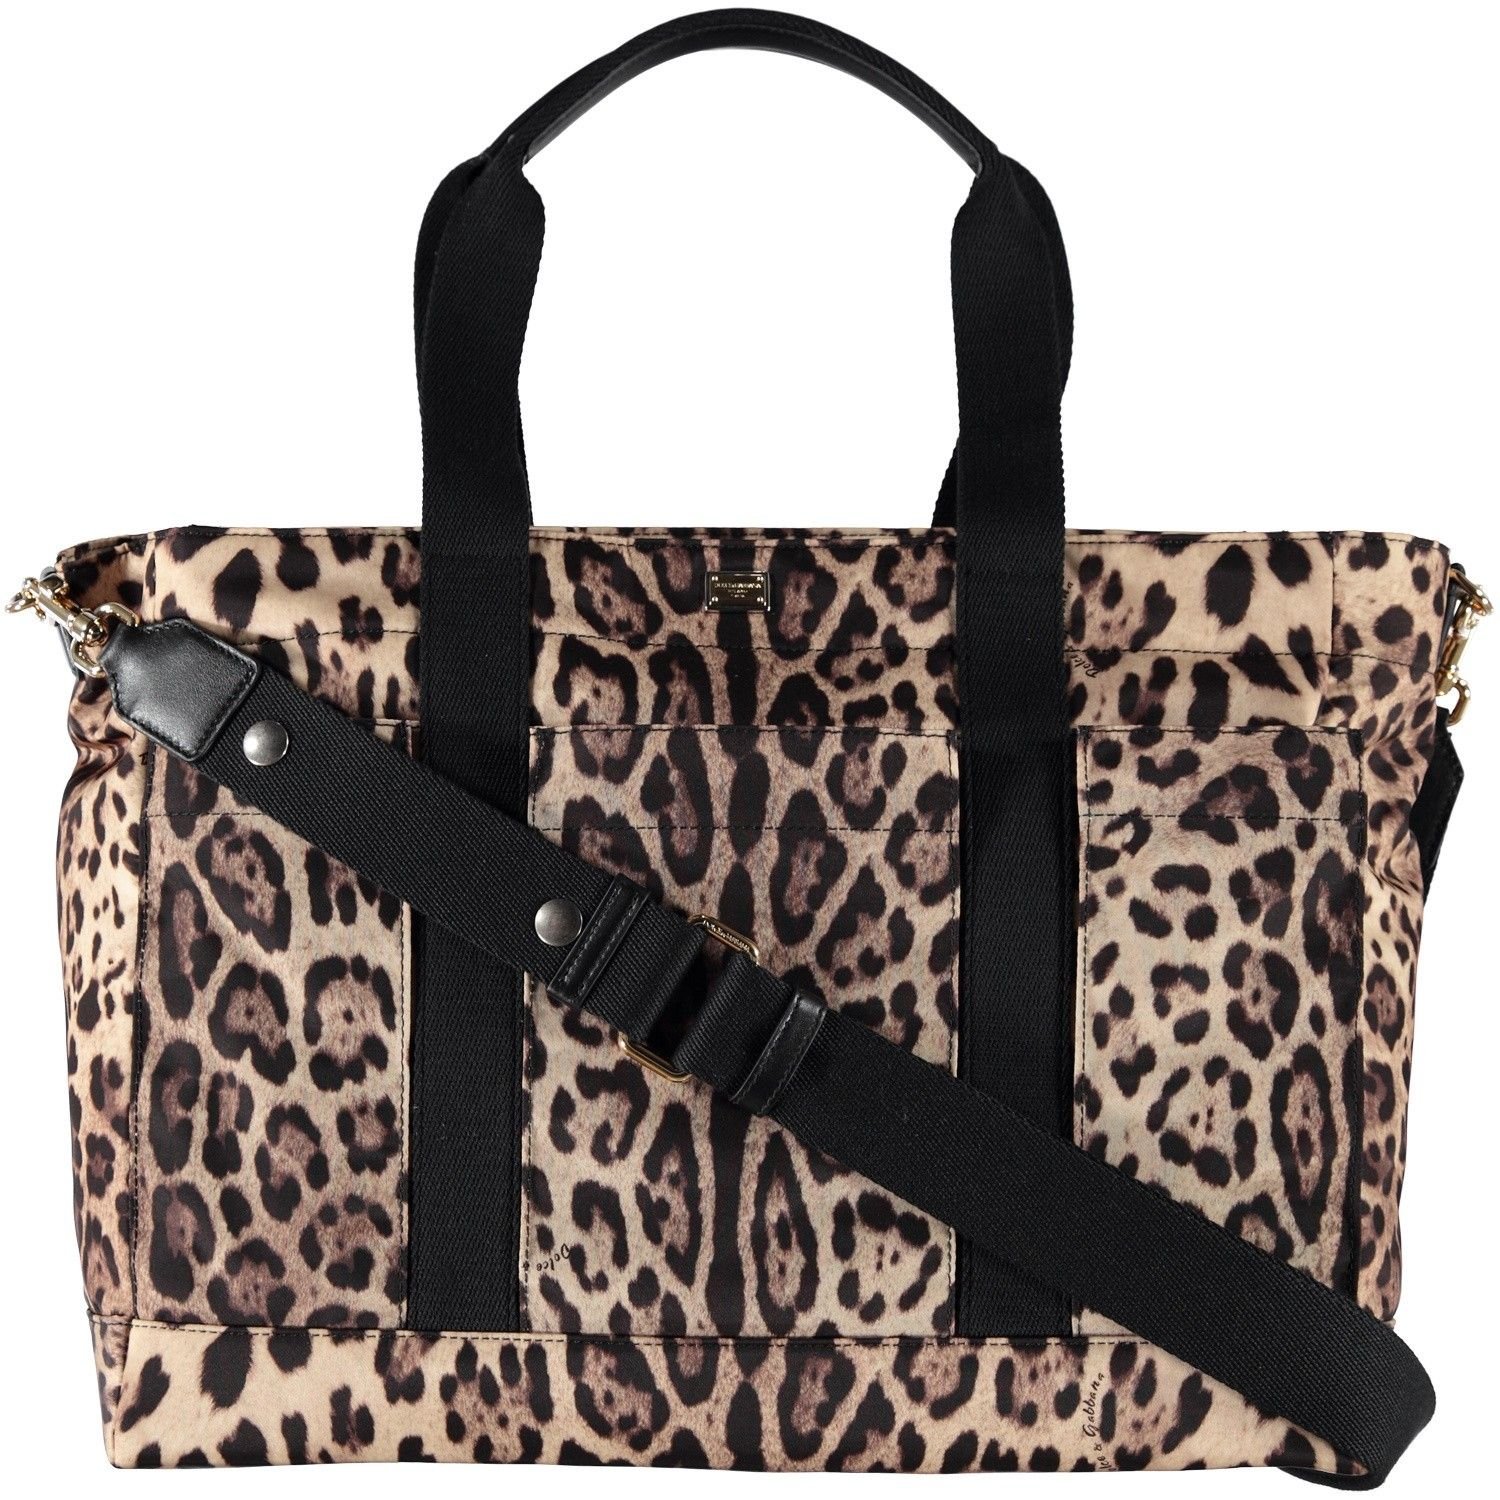 Picture of Dolce & Gabbana EB0062 diaper bags panther